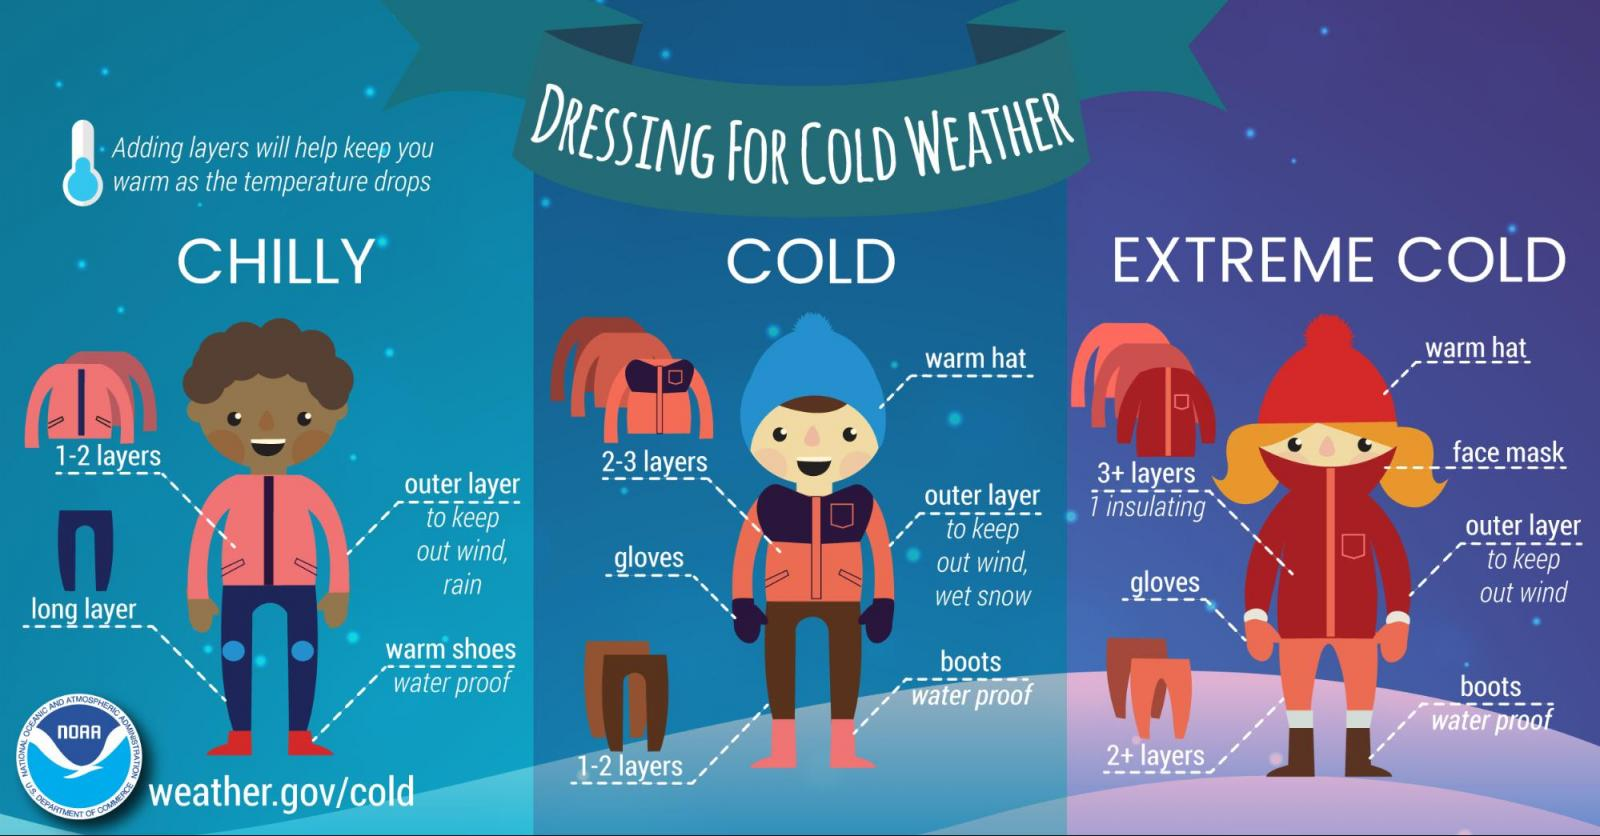 Dressing for the Cold - Infographic. Adding layers will help keep you warm as the temperature drops. Chilly: 1-2 layers; outer layer to keep out wind, rain; long layer on legs; warm shoes (water proof). Cold: 2-3 layers; warm hat; gloves; outer layer to keep out wind, wet snow; 1-2 long layers on legs; boots (water-proof). Extreme cold: 3+ layers (1 insulating); warm hat; face mask; gloves; outer layer to keep out wind; 2+ long layers on legs; boots (water proof).